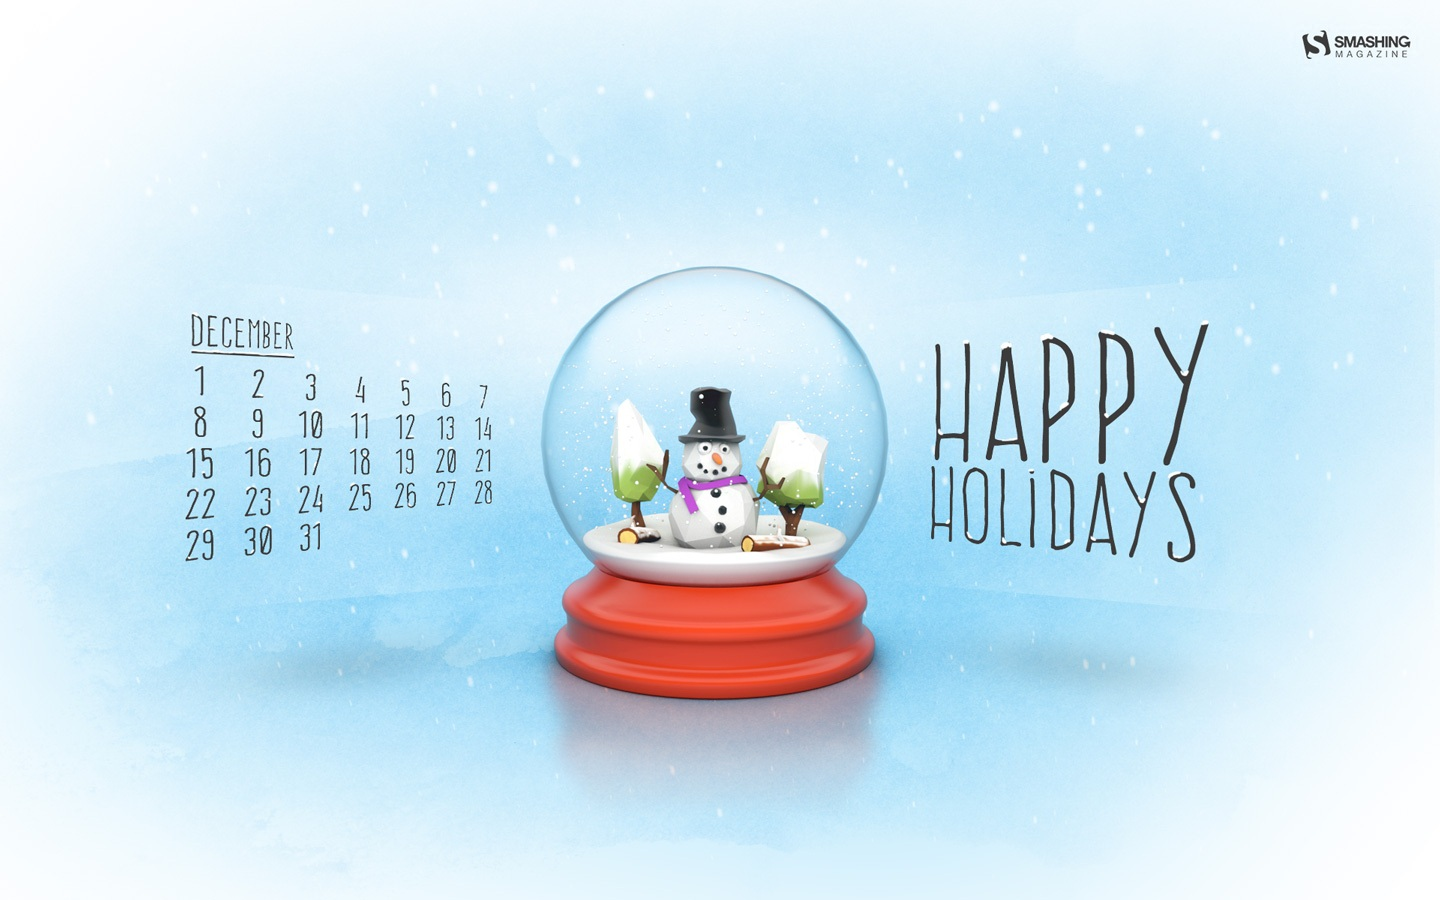 In January Calendar Wallpaper 51184